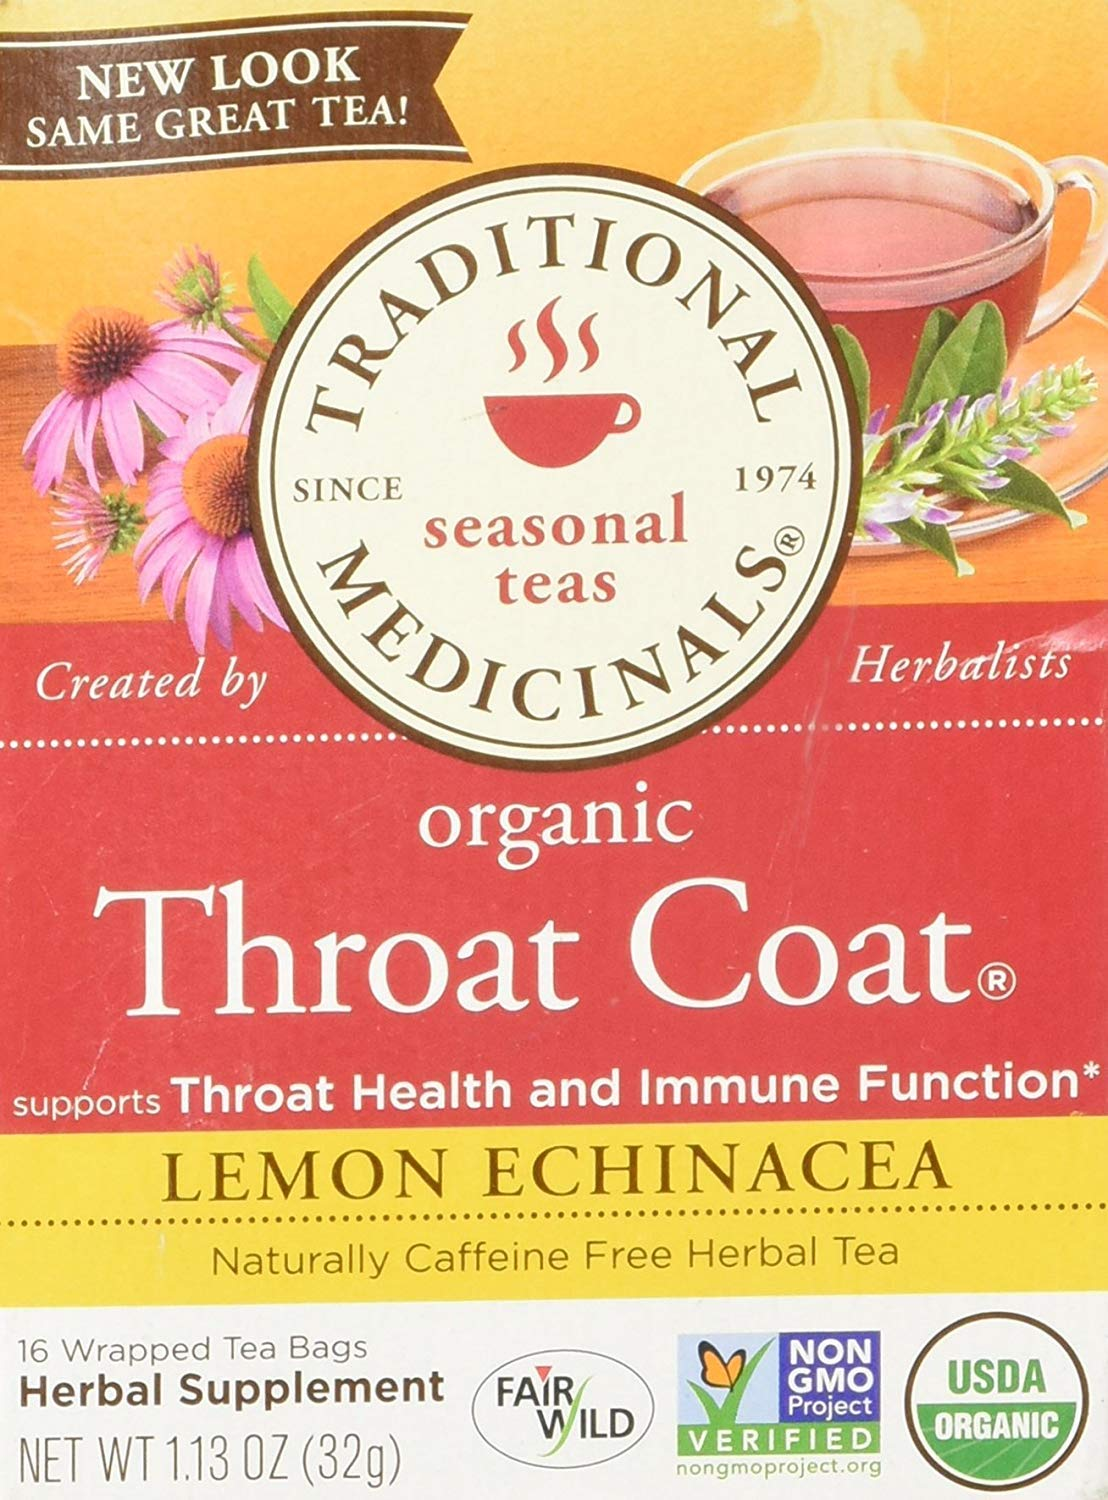 Traditional Medicinals Throat Coat Lemon Echinacea Seasonal Tea Organic, 16 CT Pack – 6